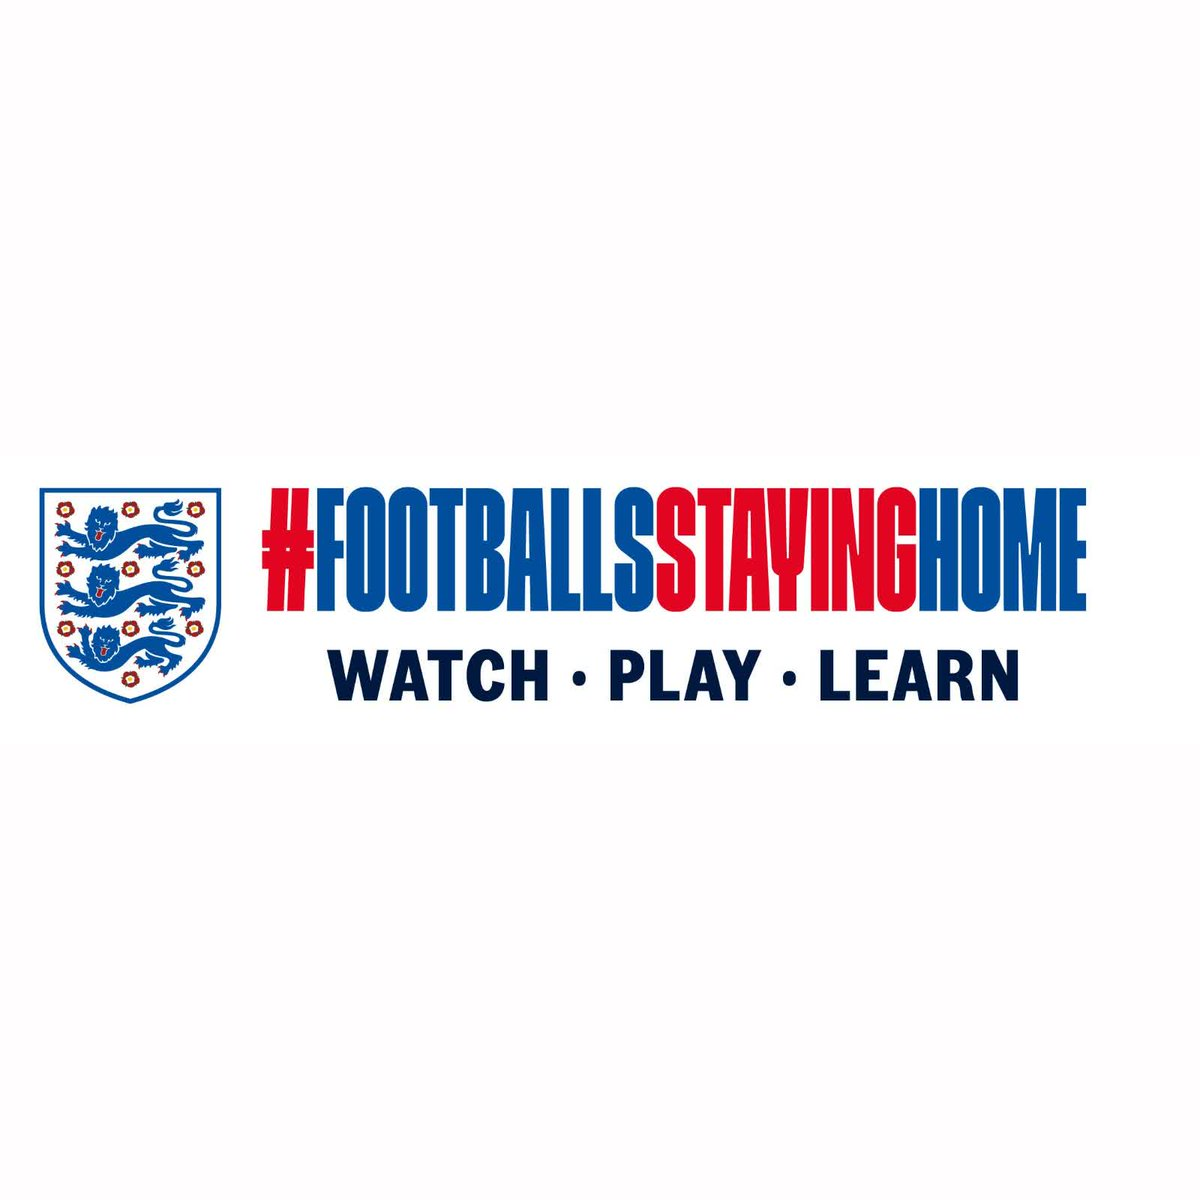 Introducing #FootballsStayingHome! Well let our captains tell you more. Over to you, @stephhoughton2 and @HKane...